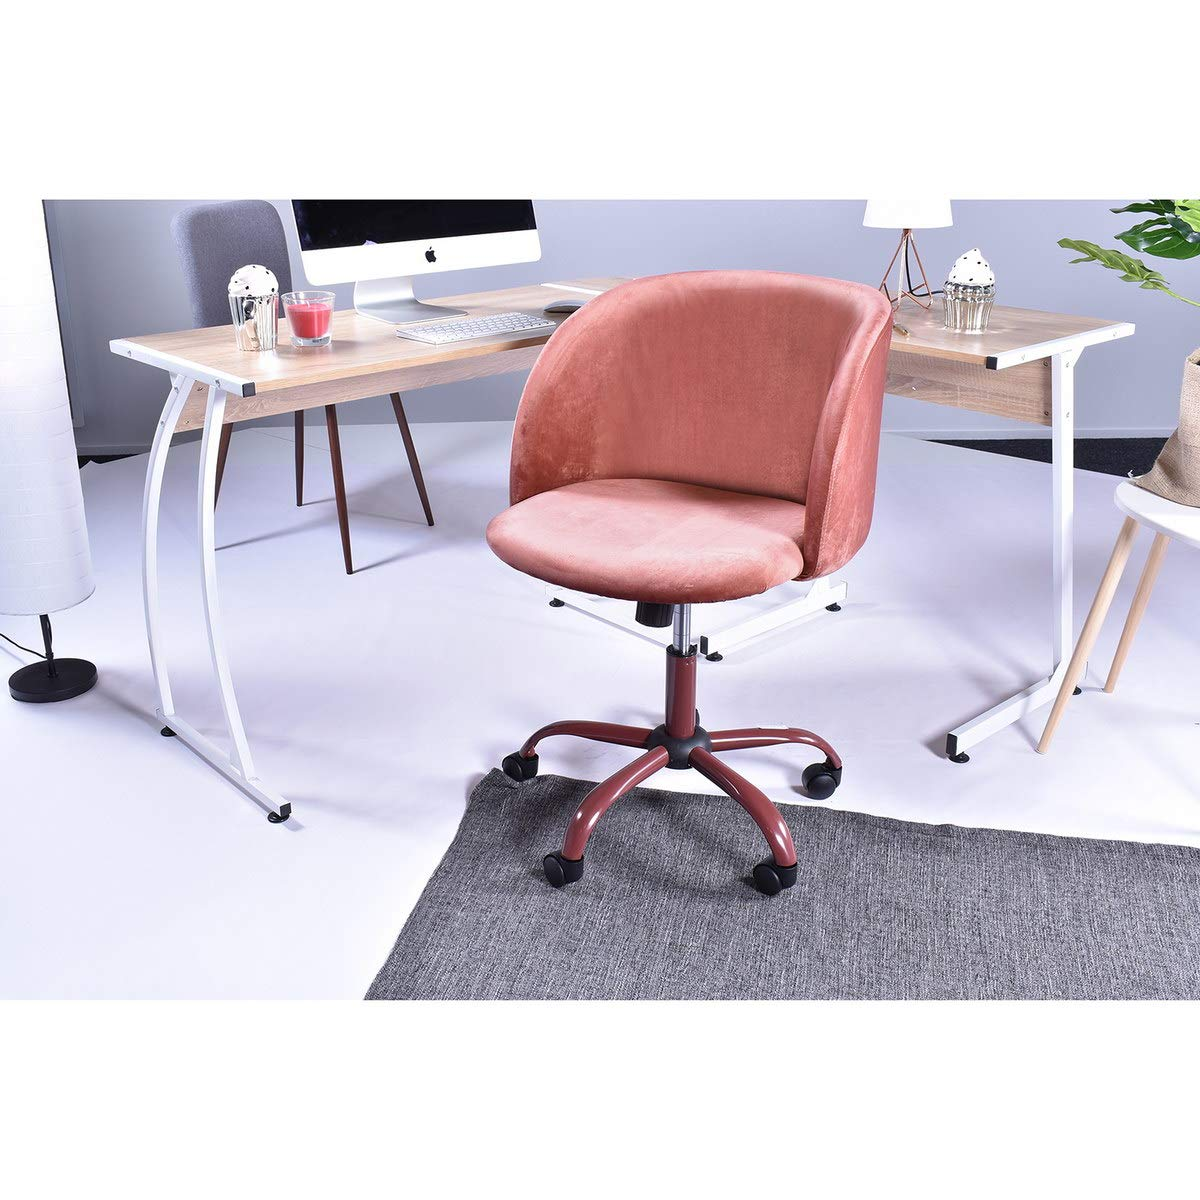 Eggree Mid Back Swivel Computer Desk Chair Ergonomic Home Office Task Chair Executive Chairs With Velvet Seat Armrest Accent Furniture Rose Pink Buy Online In El Salvador Eggree Products In El